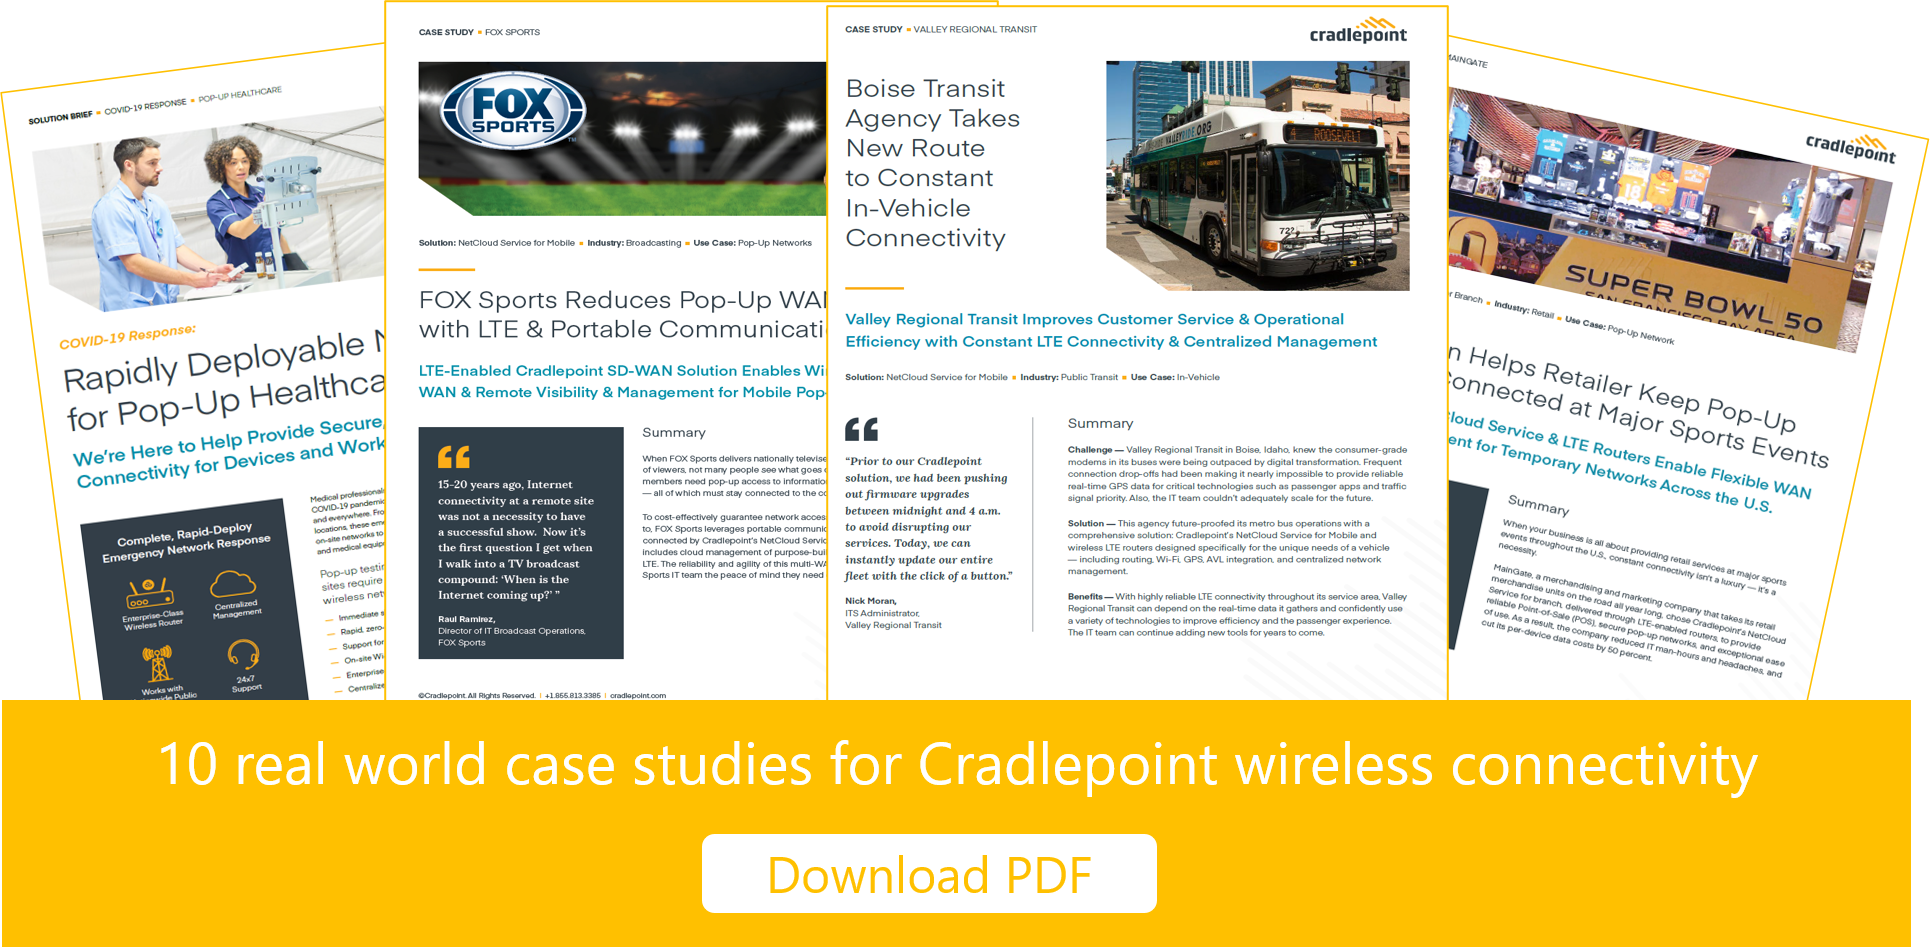 10 Cradlepoint Business Use Cases